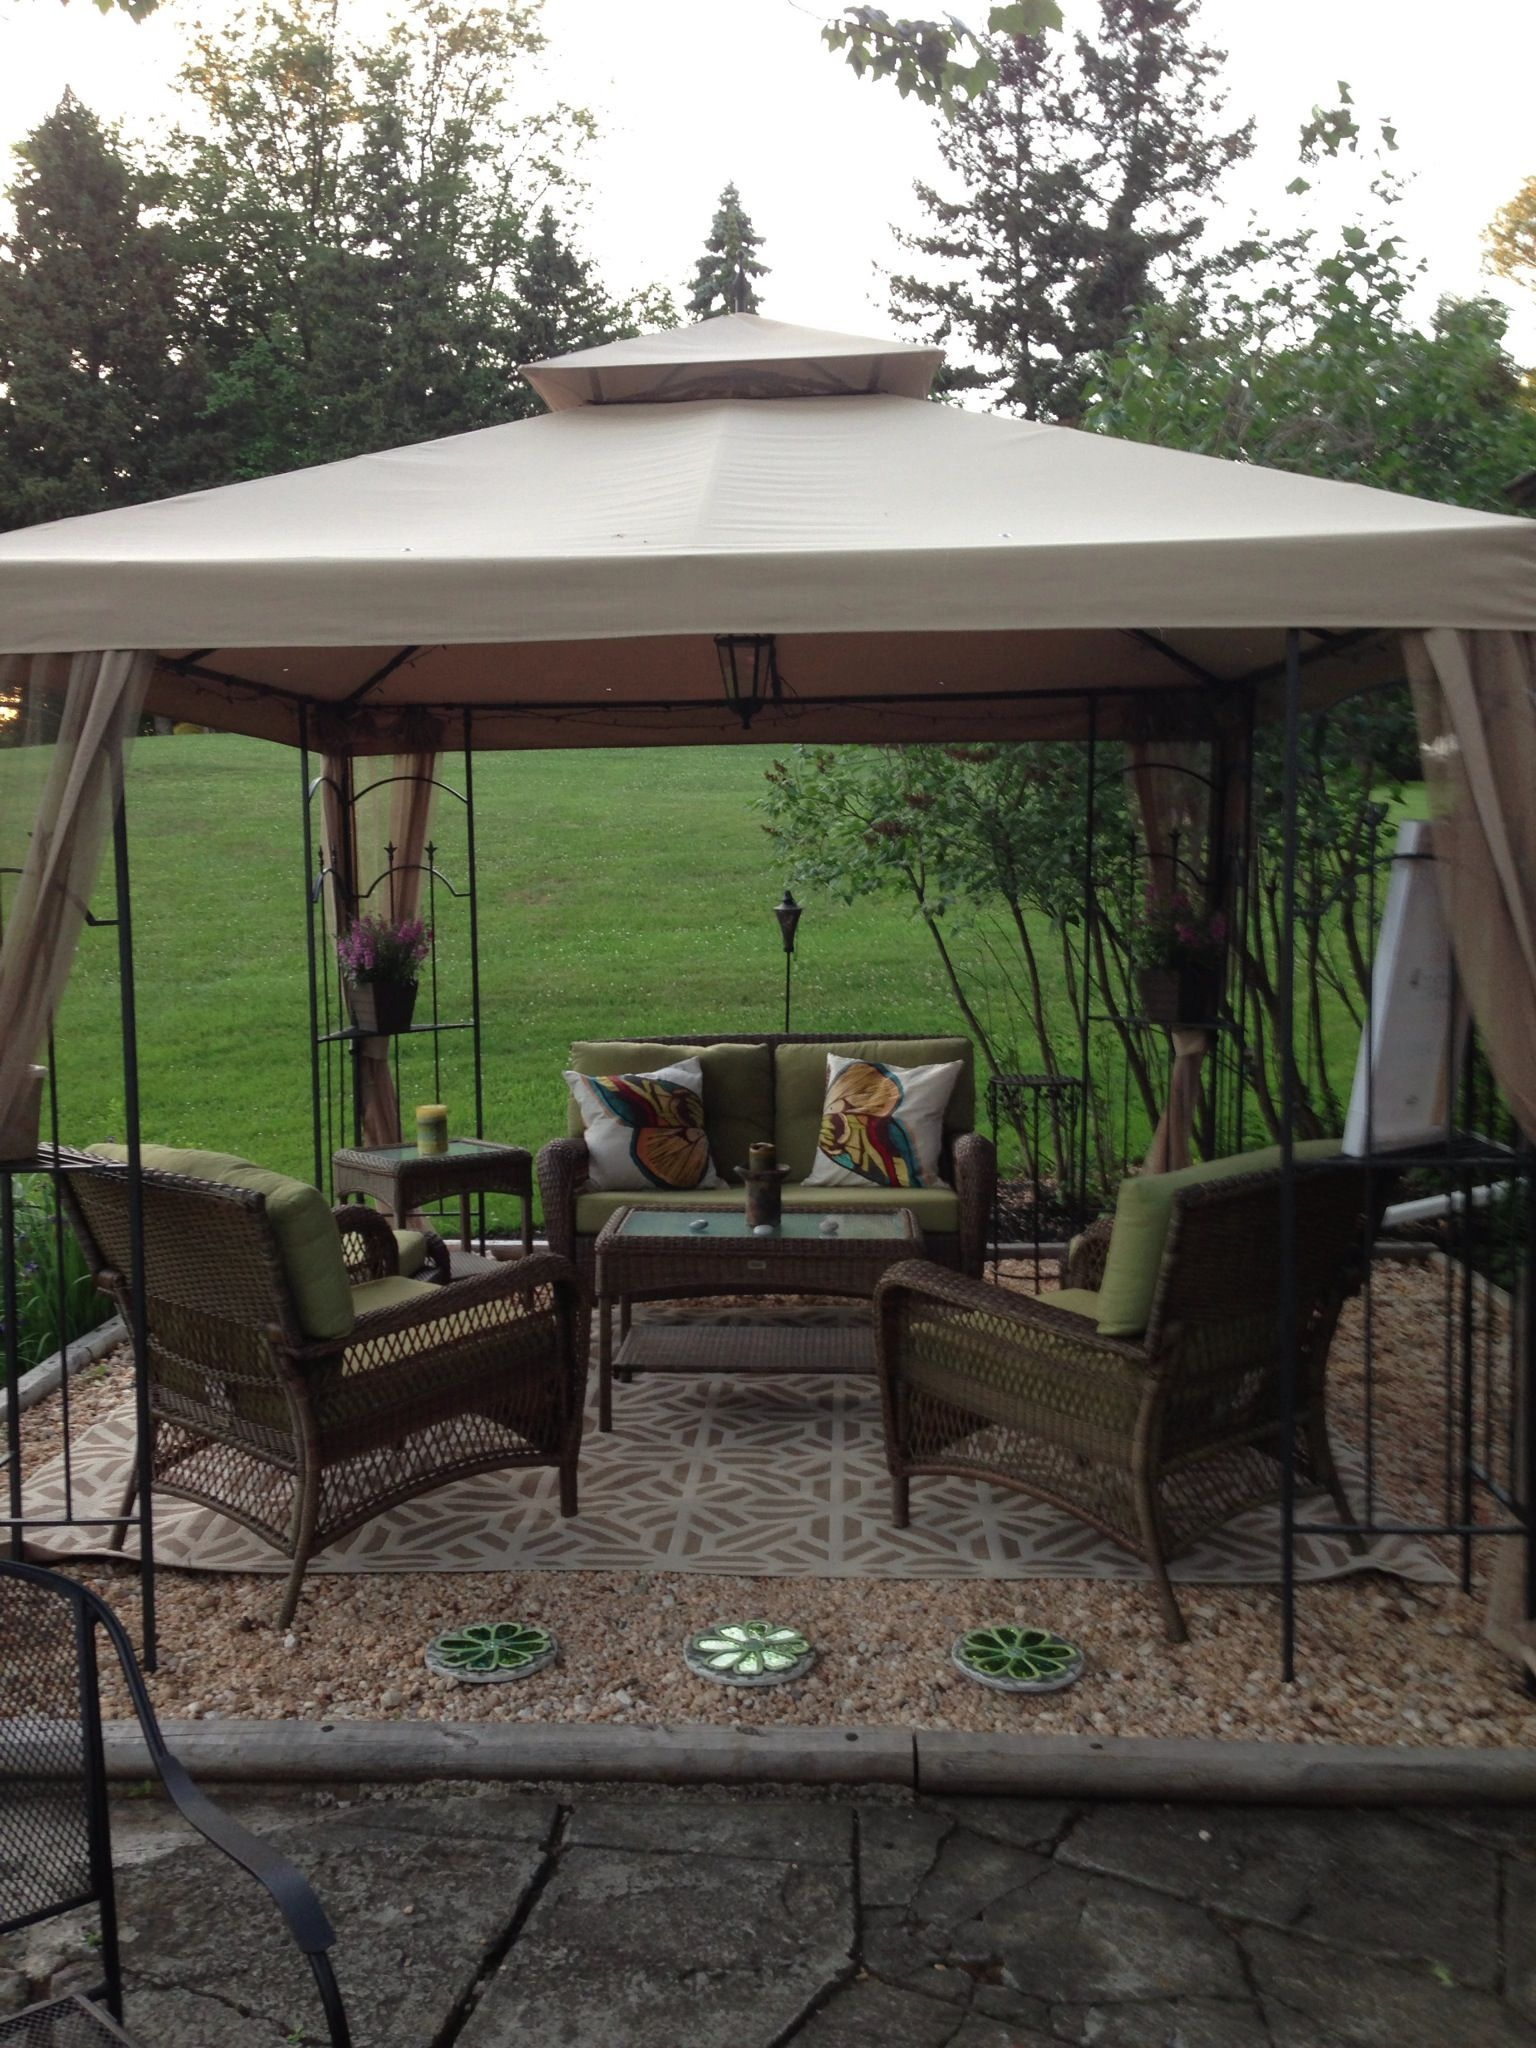 Idea For Gazebo On Sale For Just Over 1000 At Lowe S In